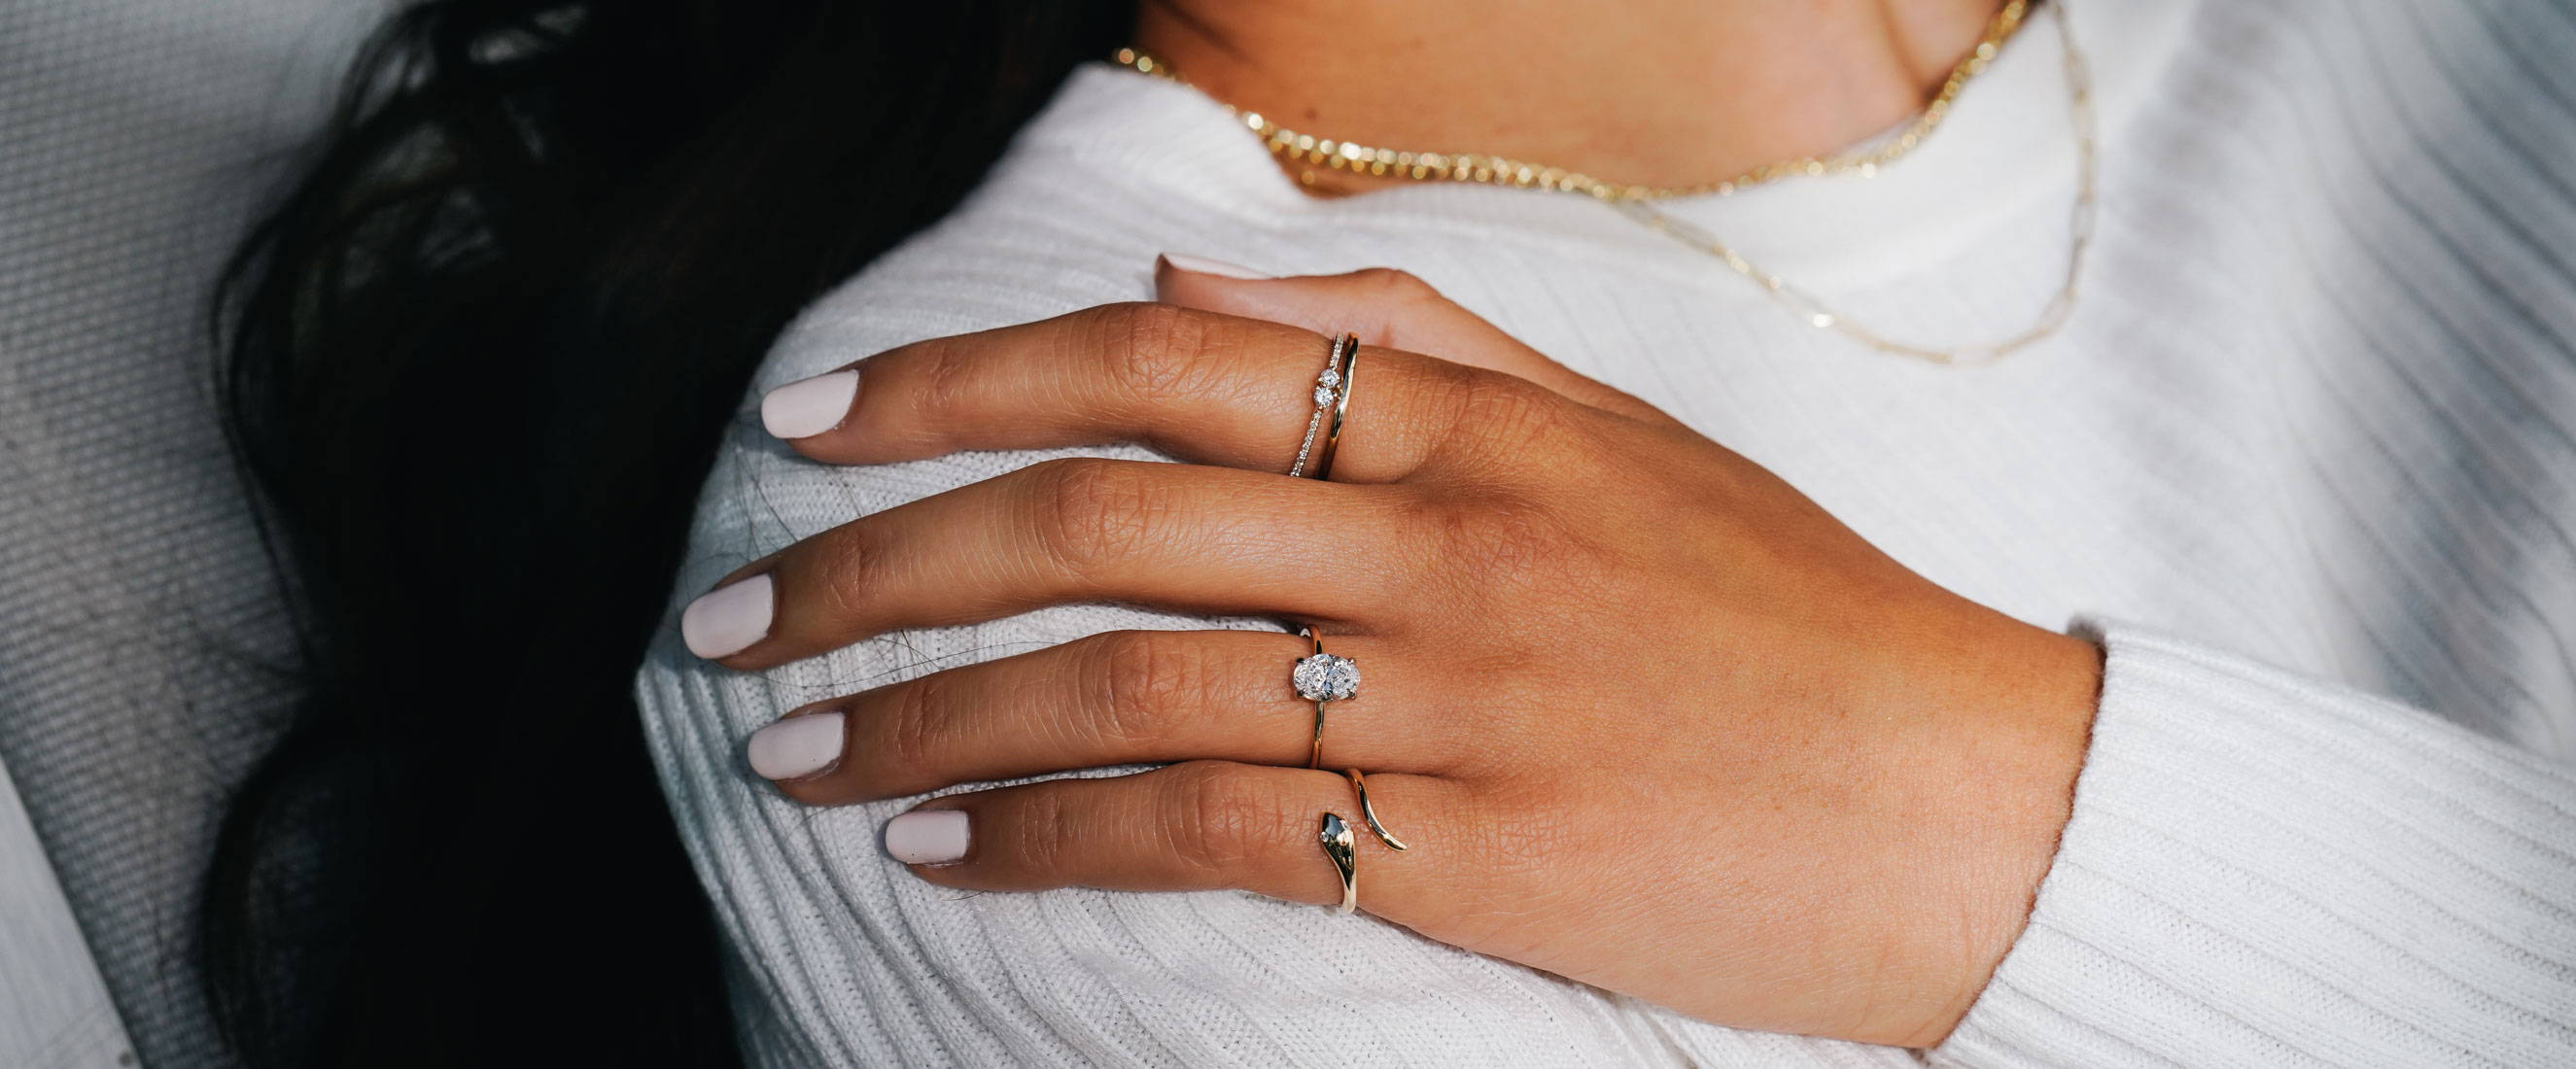 VOW by Ring Concierge engagement ring and Ring Concierge fine jewelry